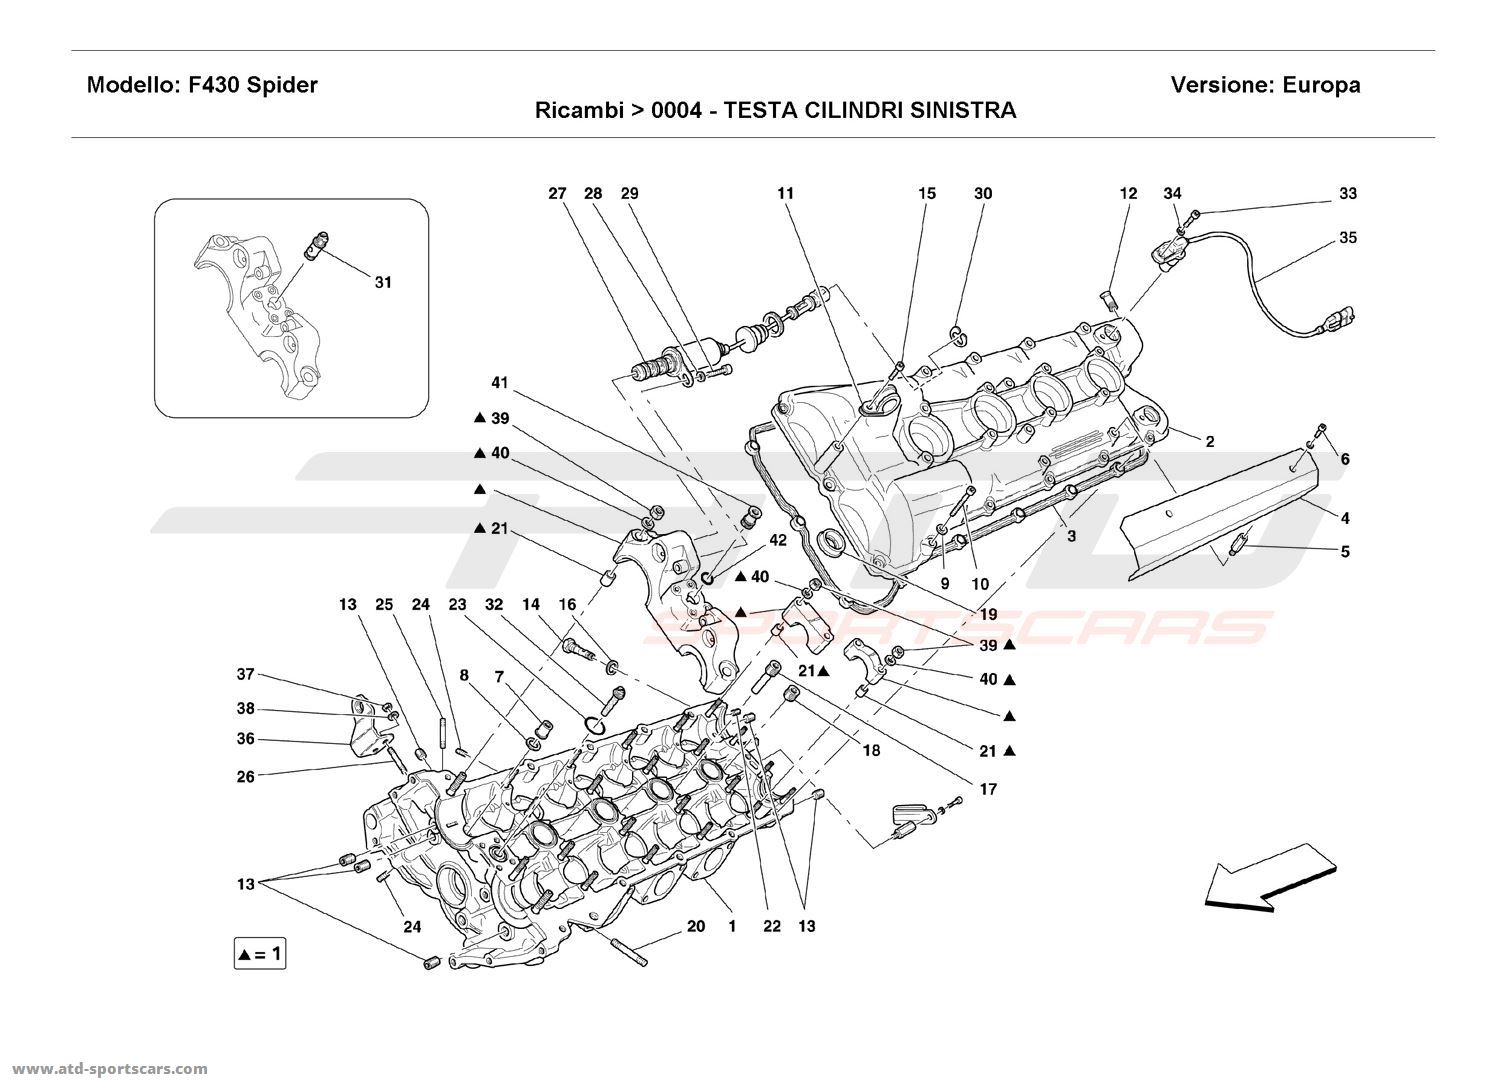 Ferrari F430 Spider Engine Parts At Atd Sportscars